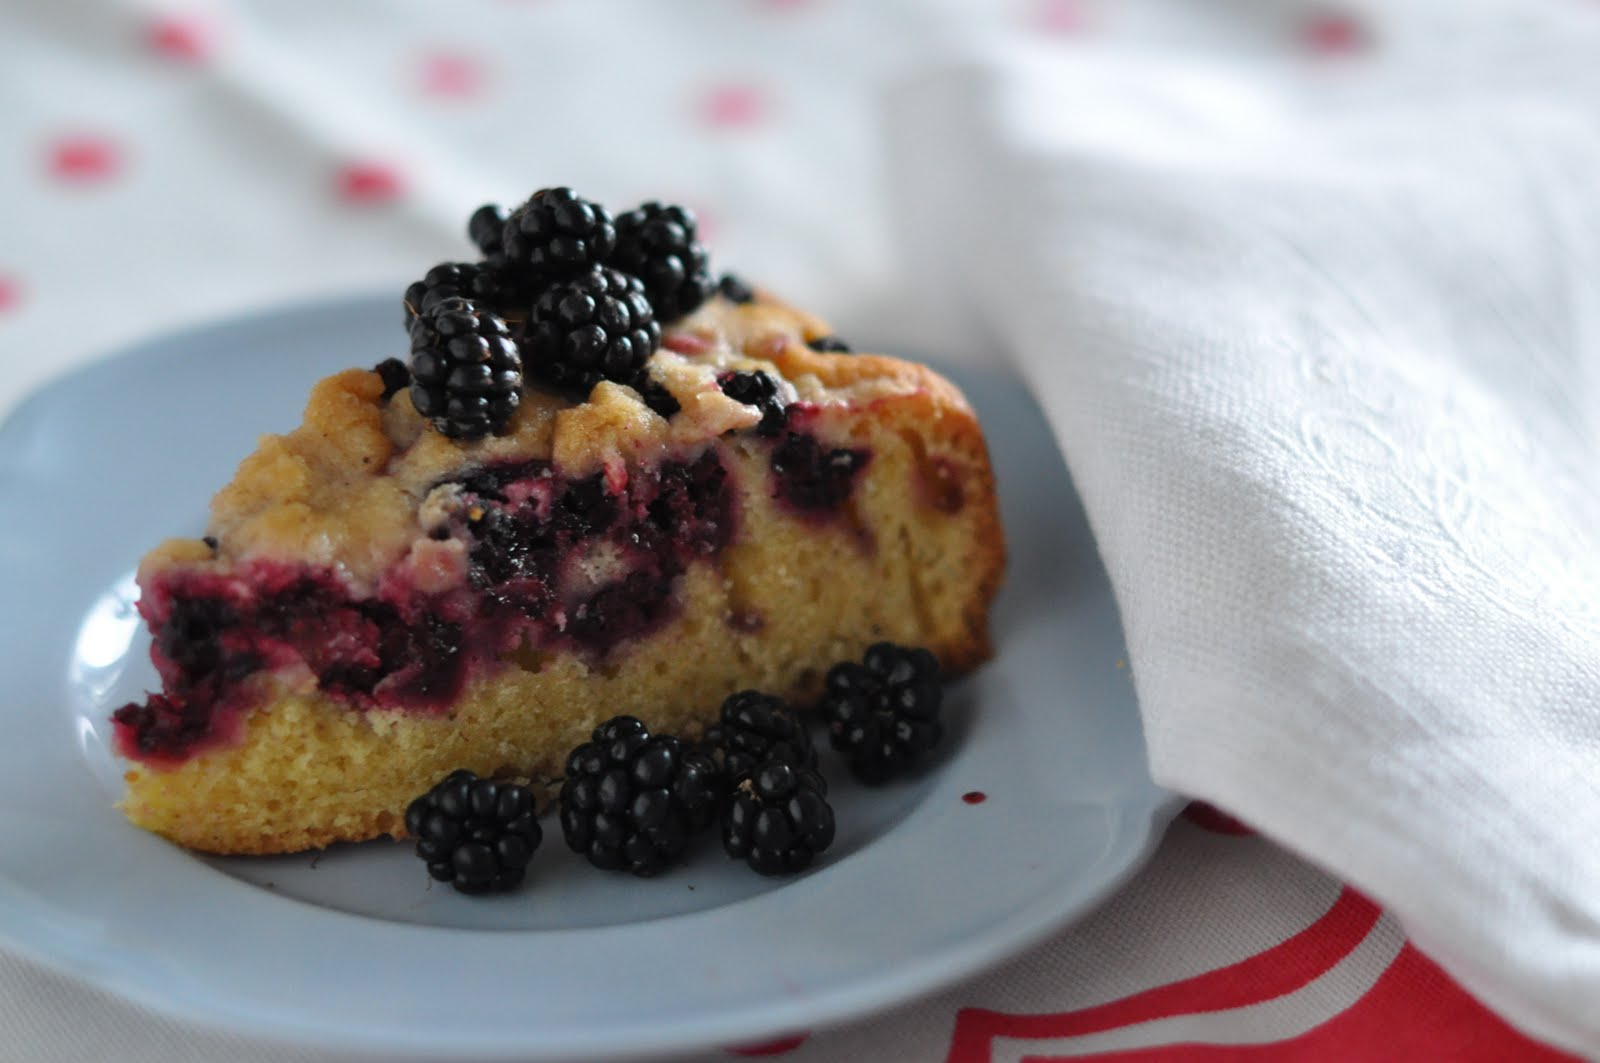 Pin Blackberry Crumb Cake Pies And Plots Cake on Pinterest